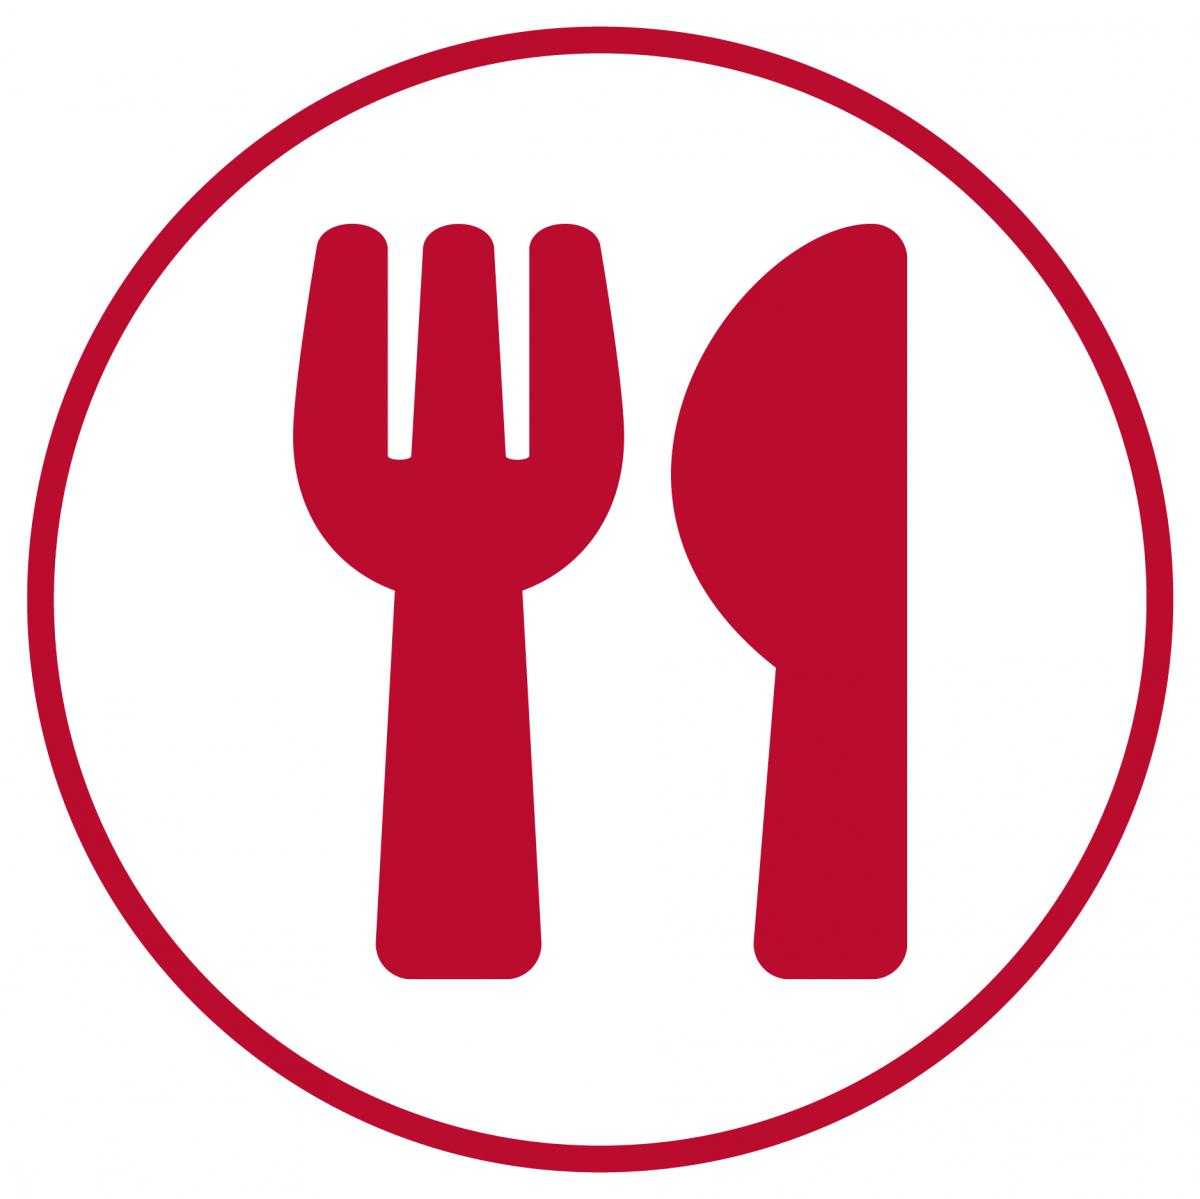 Red circle with a knife and fork.